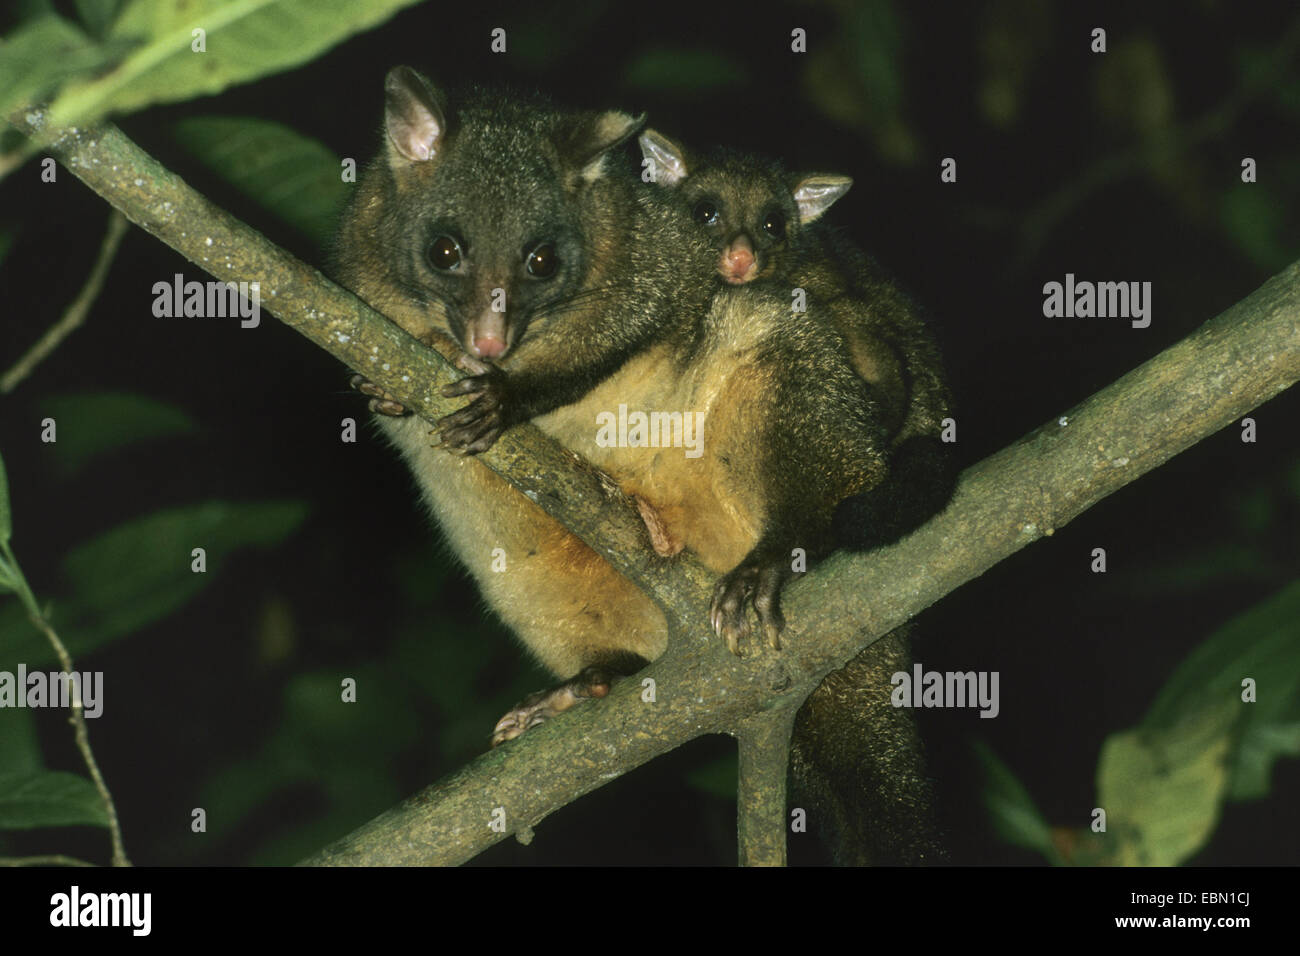 Brush-tailed possum, Brushtail Possom (Trichosurus vulpecula), mother carrying pick-a-back her child - Stock Image